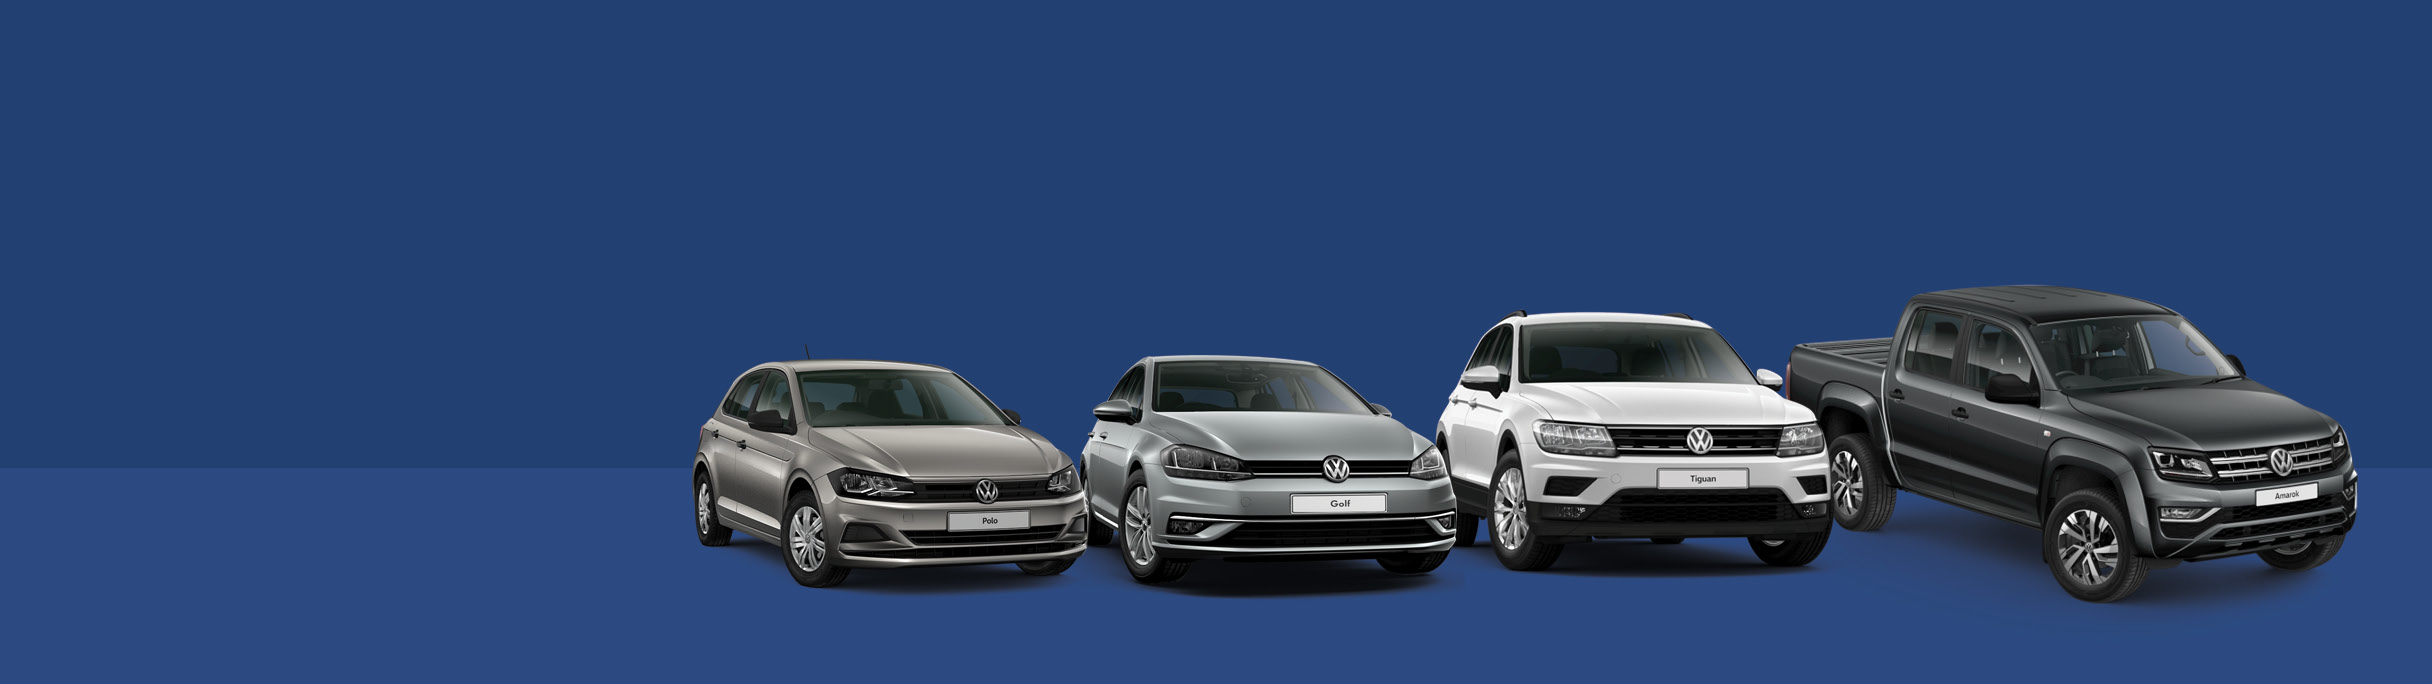 Used vehicles at Barons Volkswagen